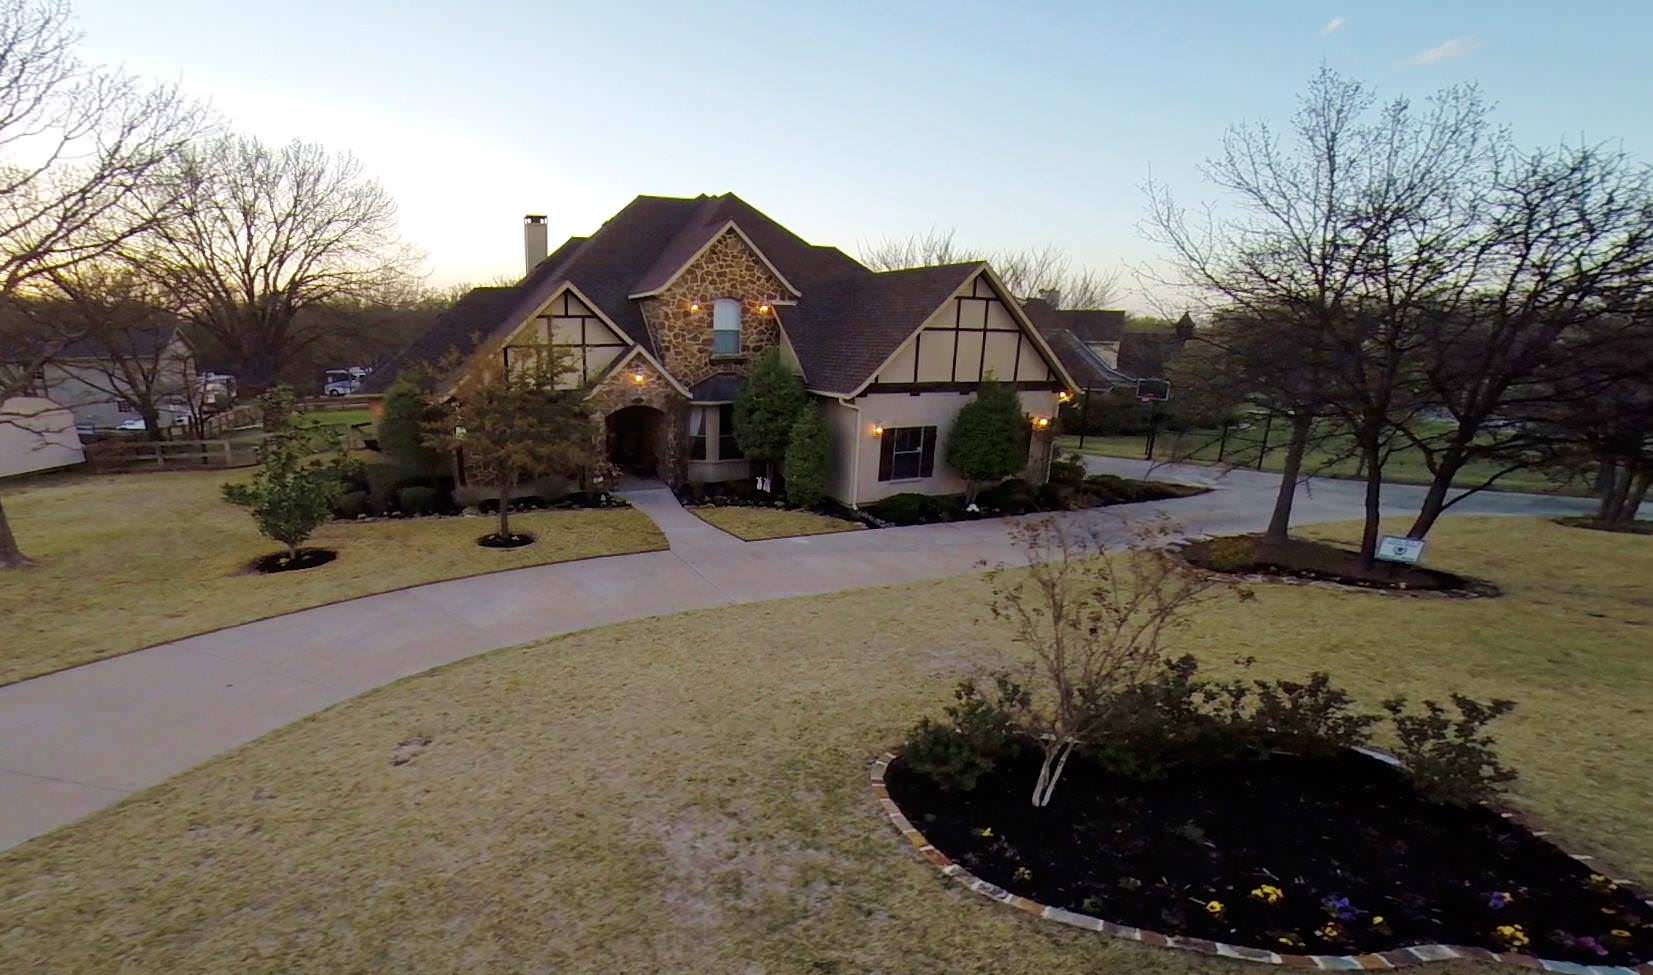 Aerial Real Estate Video Showcases Beautiful Country Setting